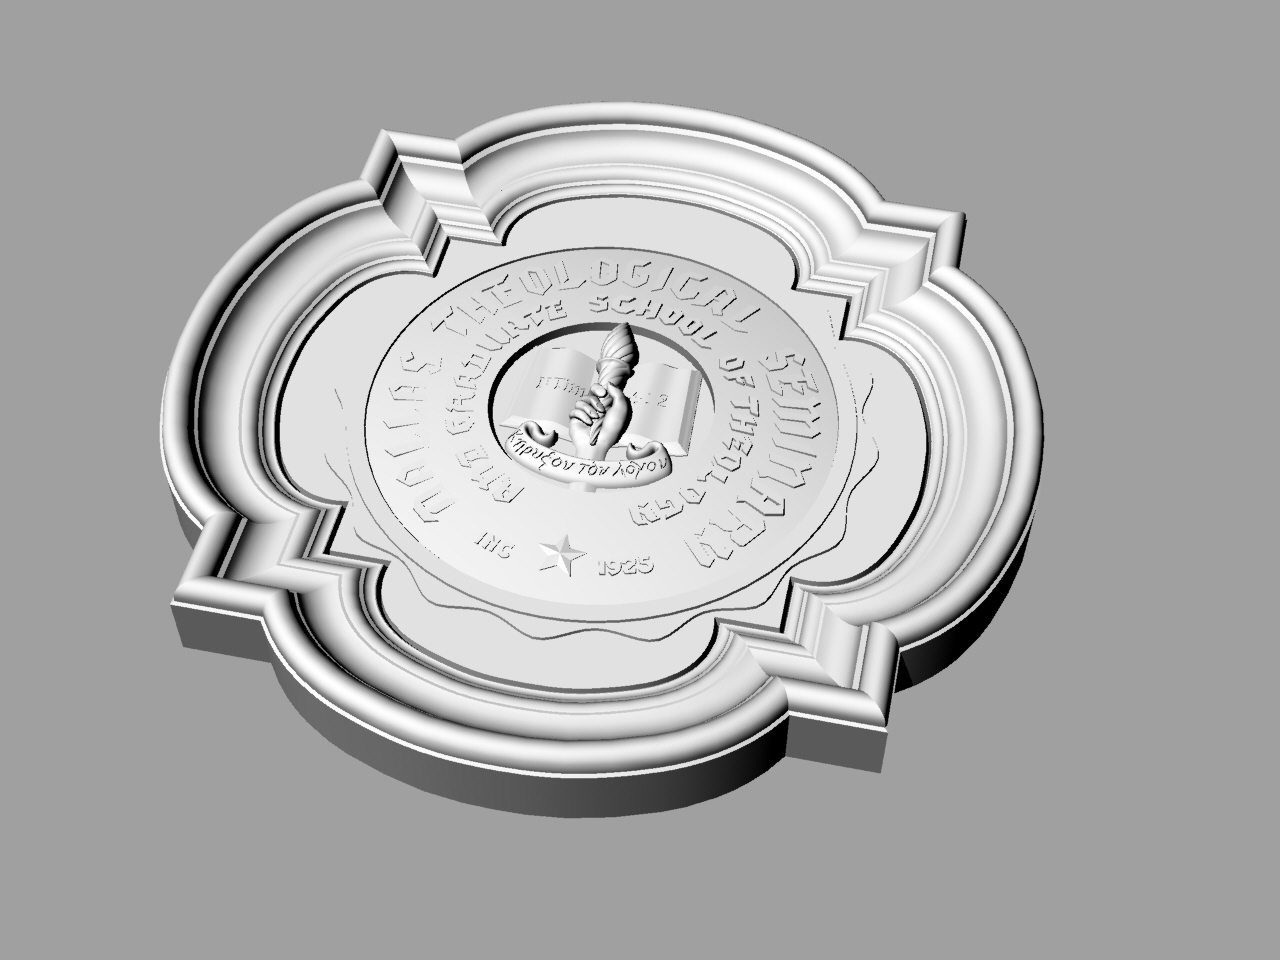 3D Model of the Medallion used as Exterior Organization Seal for the Dallas Theological Seminary and Graduate School of Theology